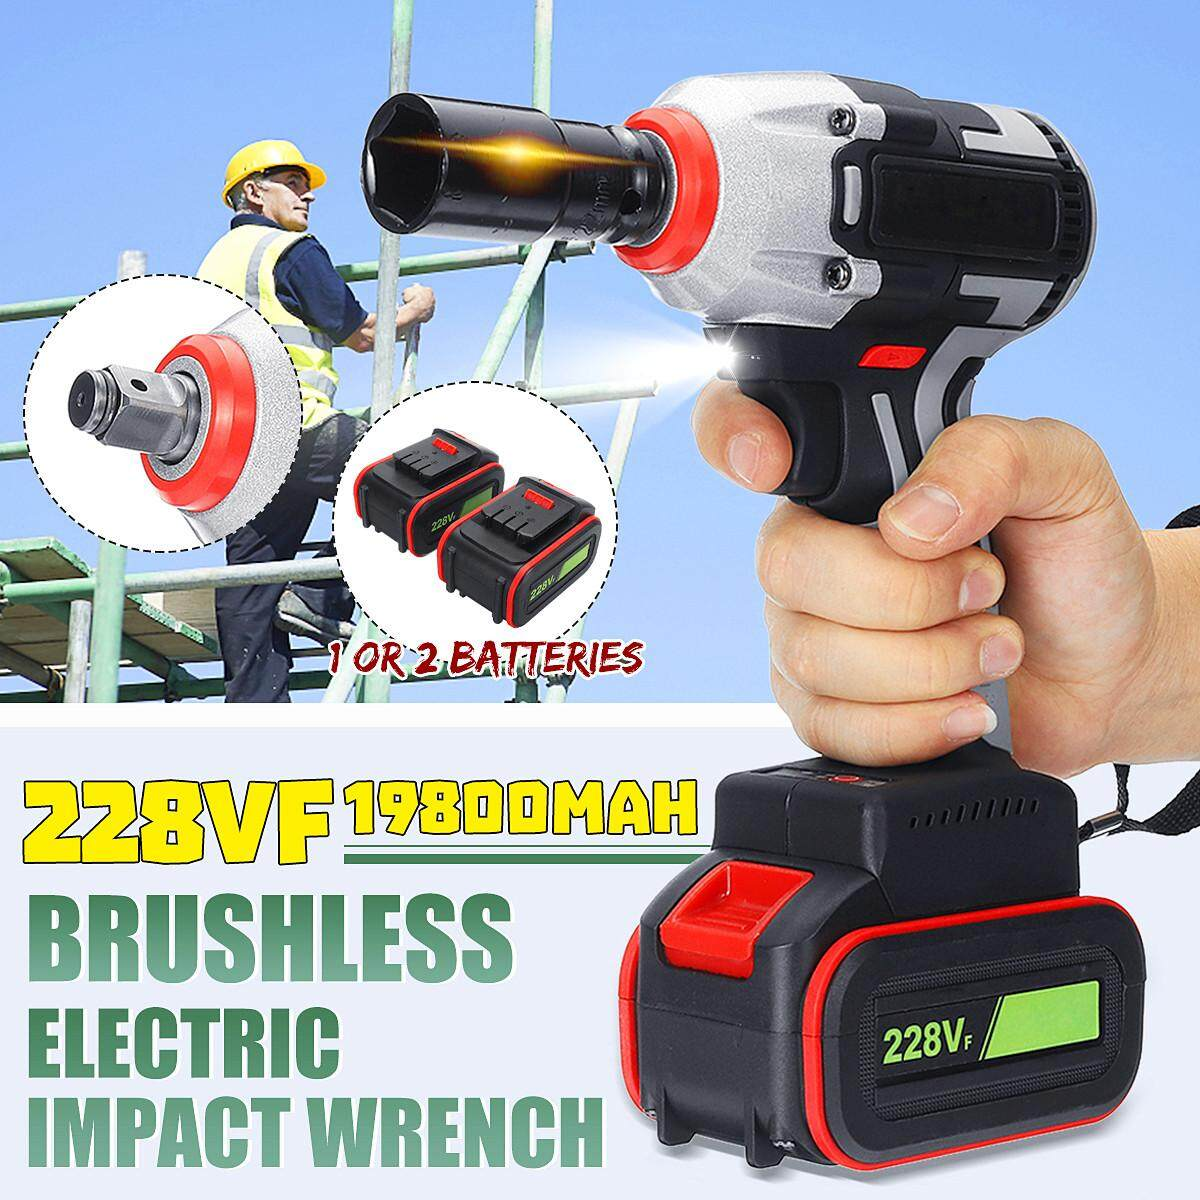 Cordless Electric Impact Wrench Brushless Driver Drill Rattle Torque 450N.M